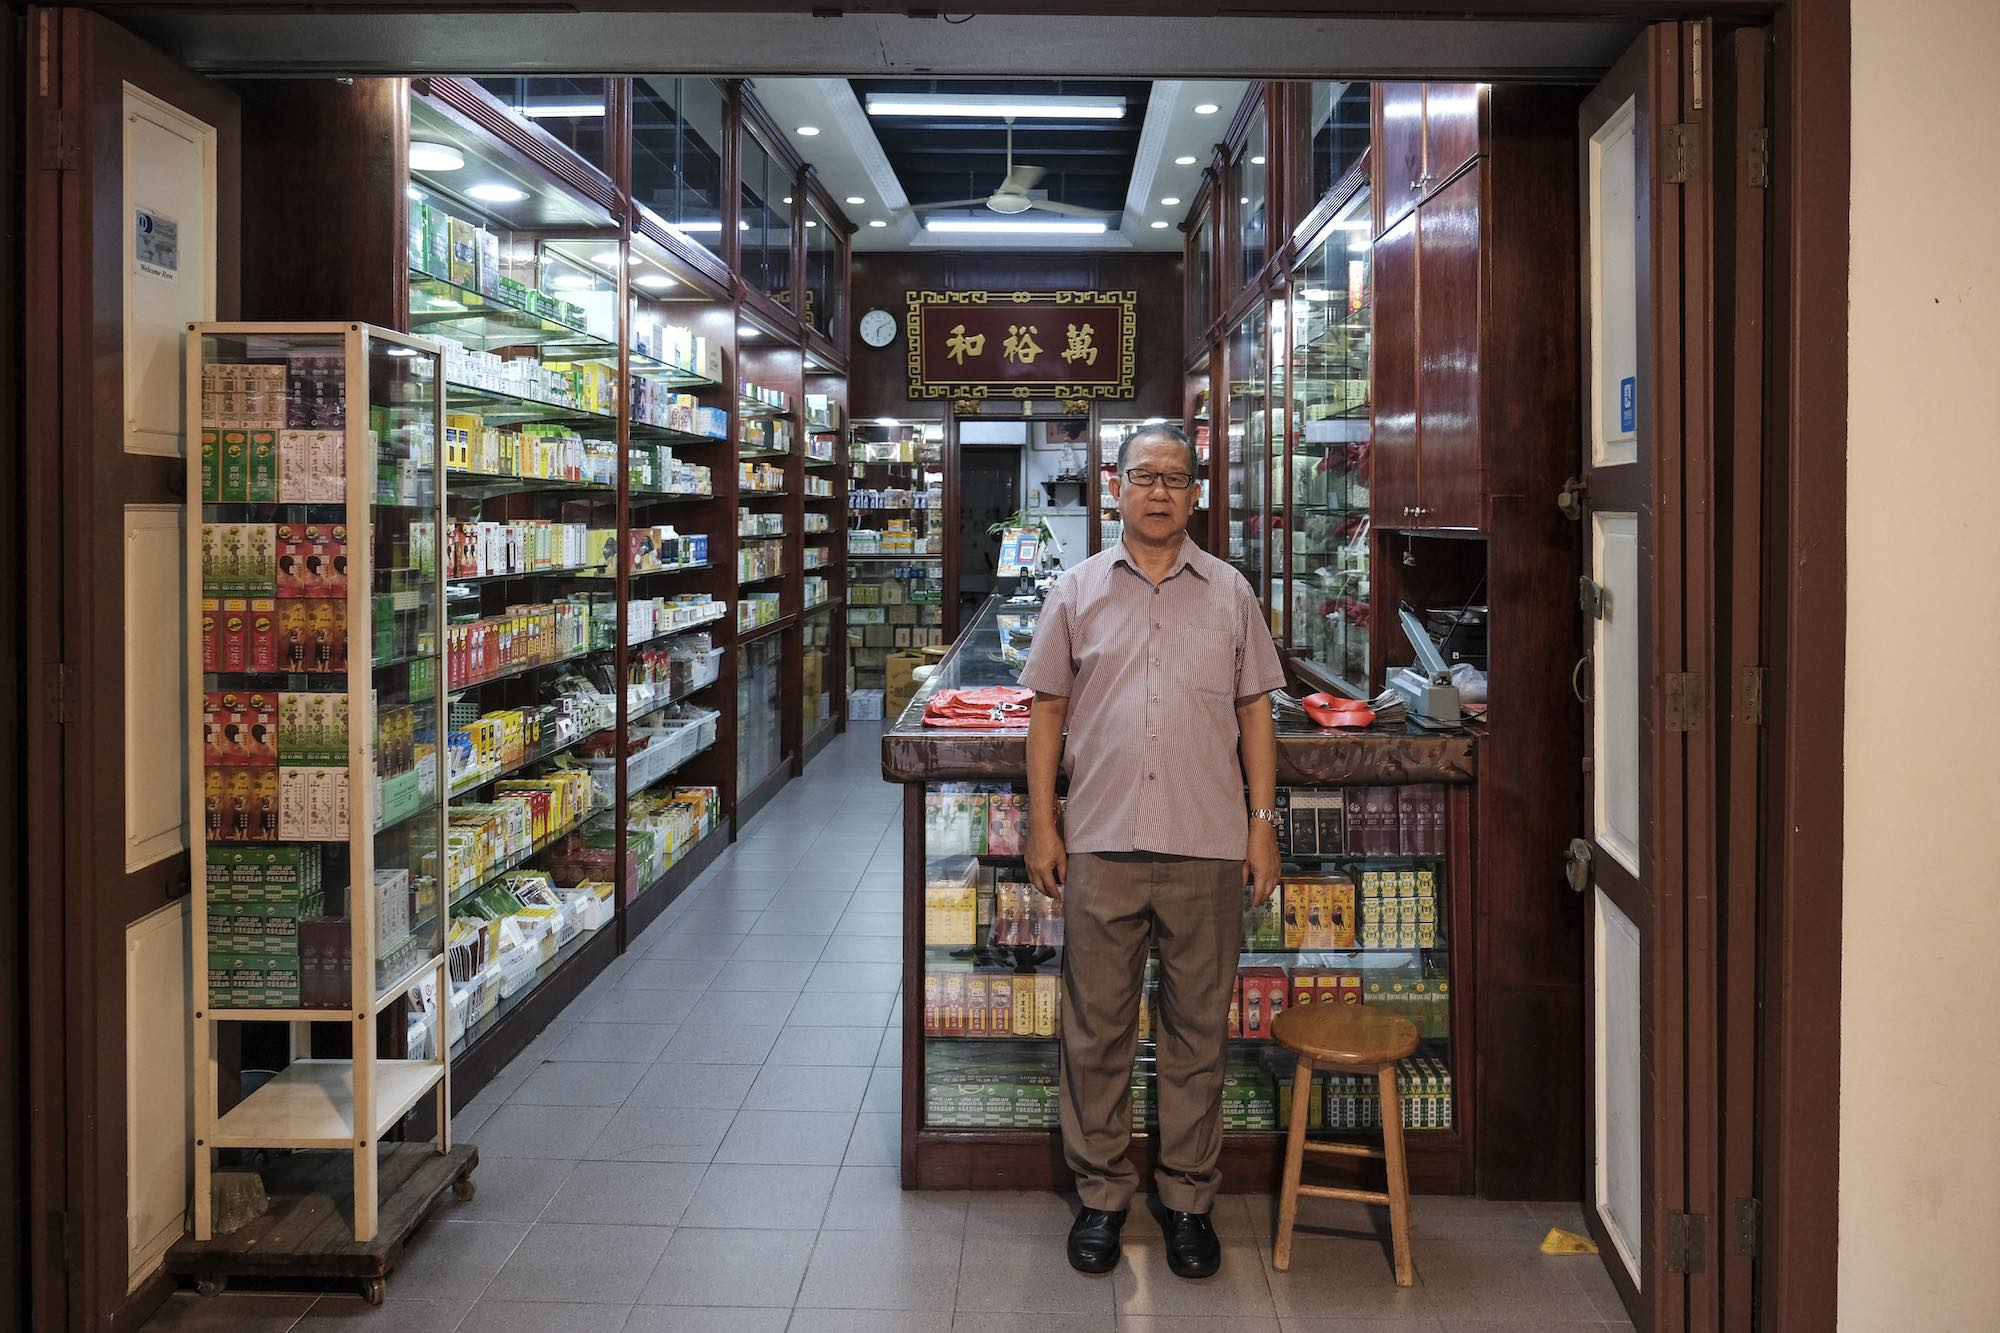 art chinese medicine documentary photography chinatown singapore jose jeuland sg